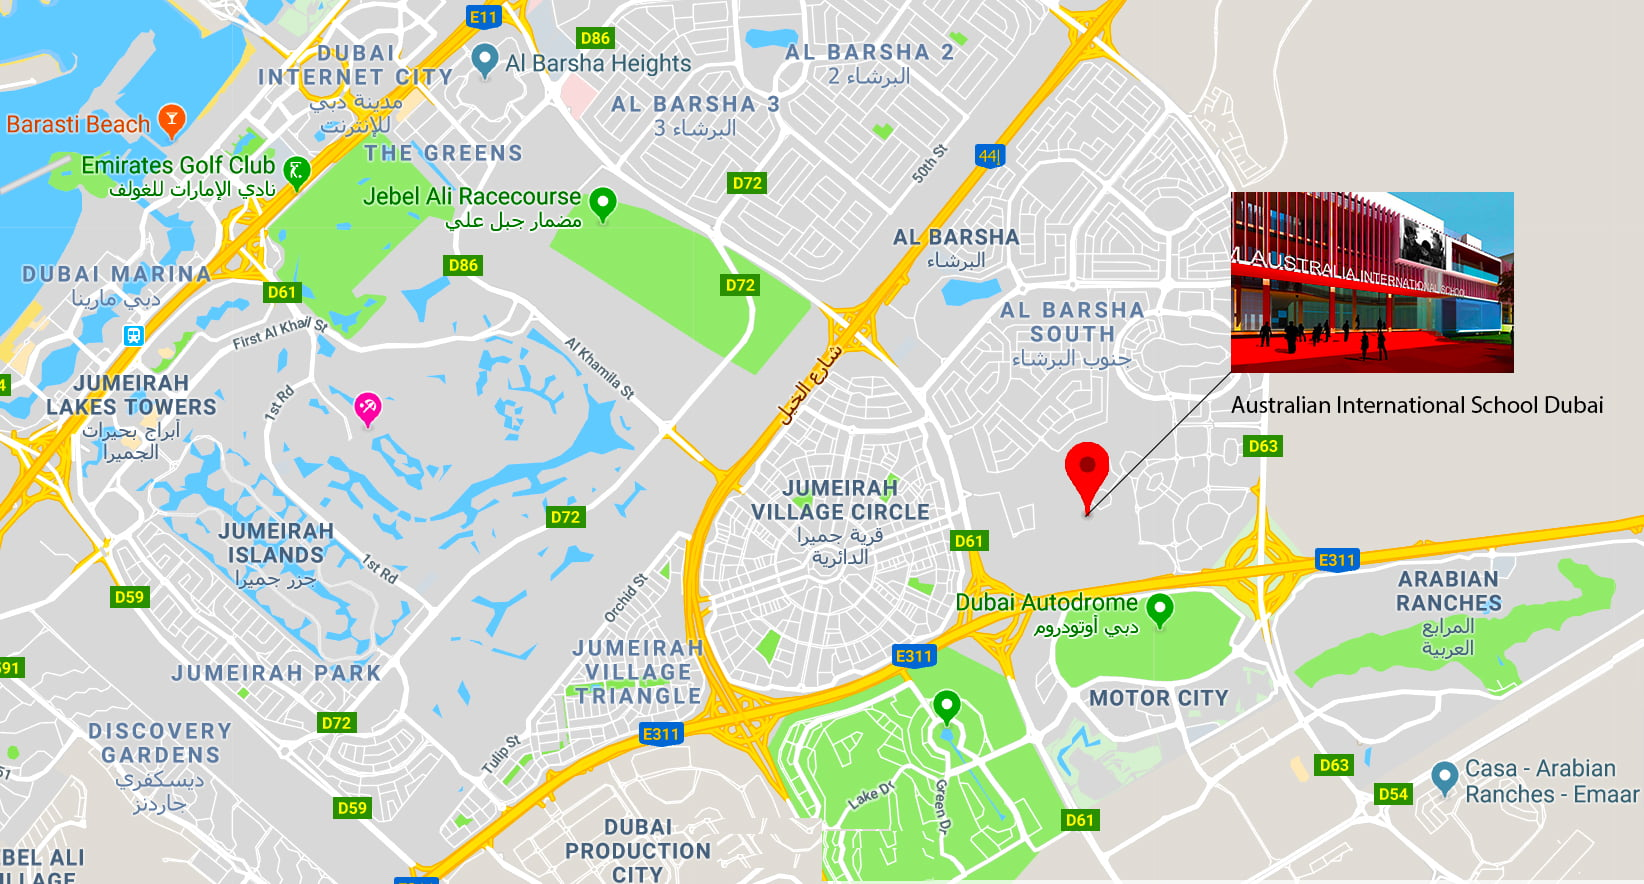 Map showing the location of the new Australian International School in Al Barsha Dubai